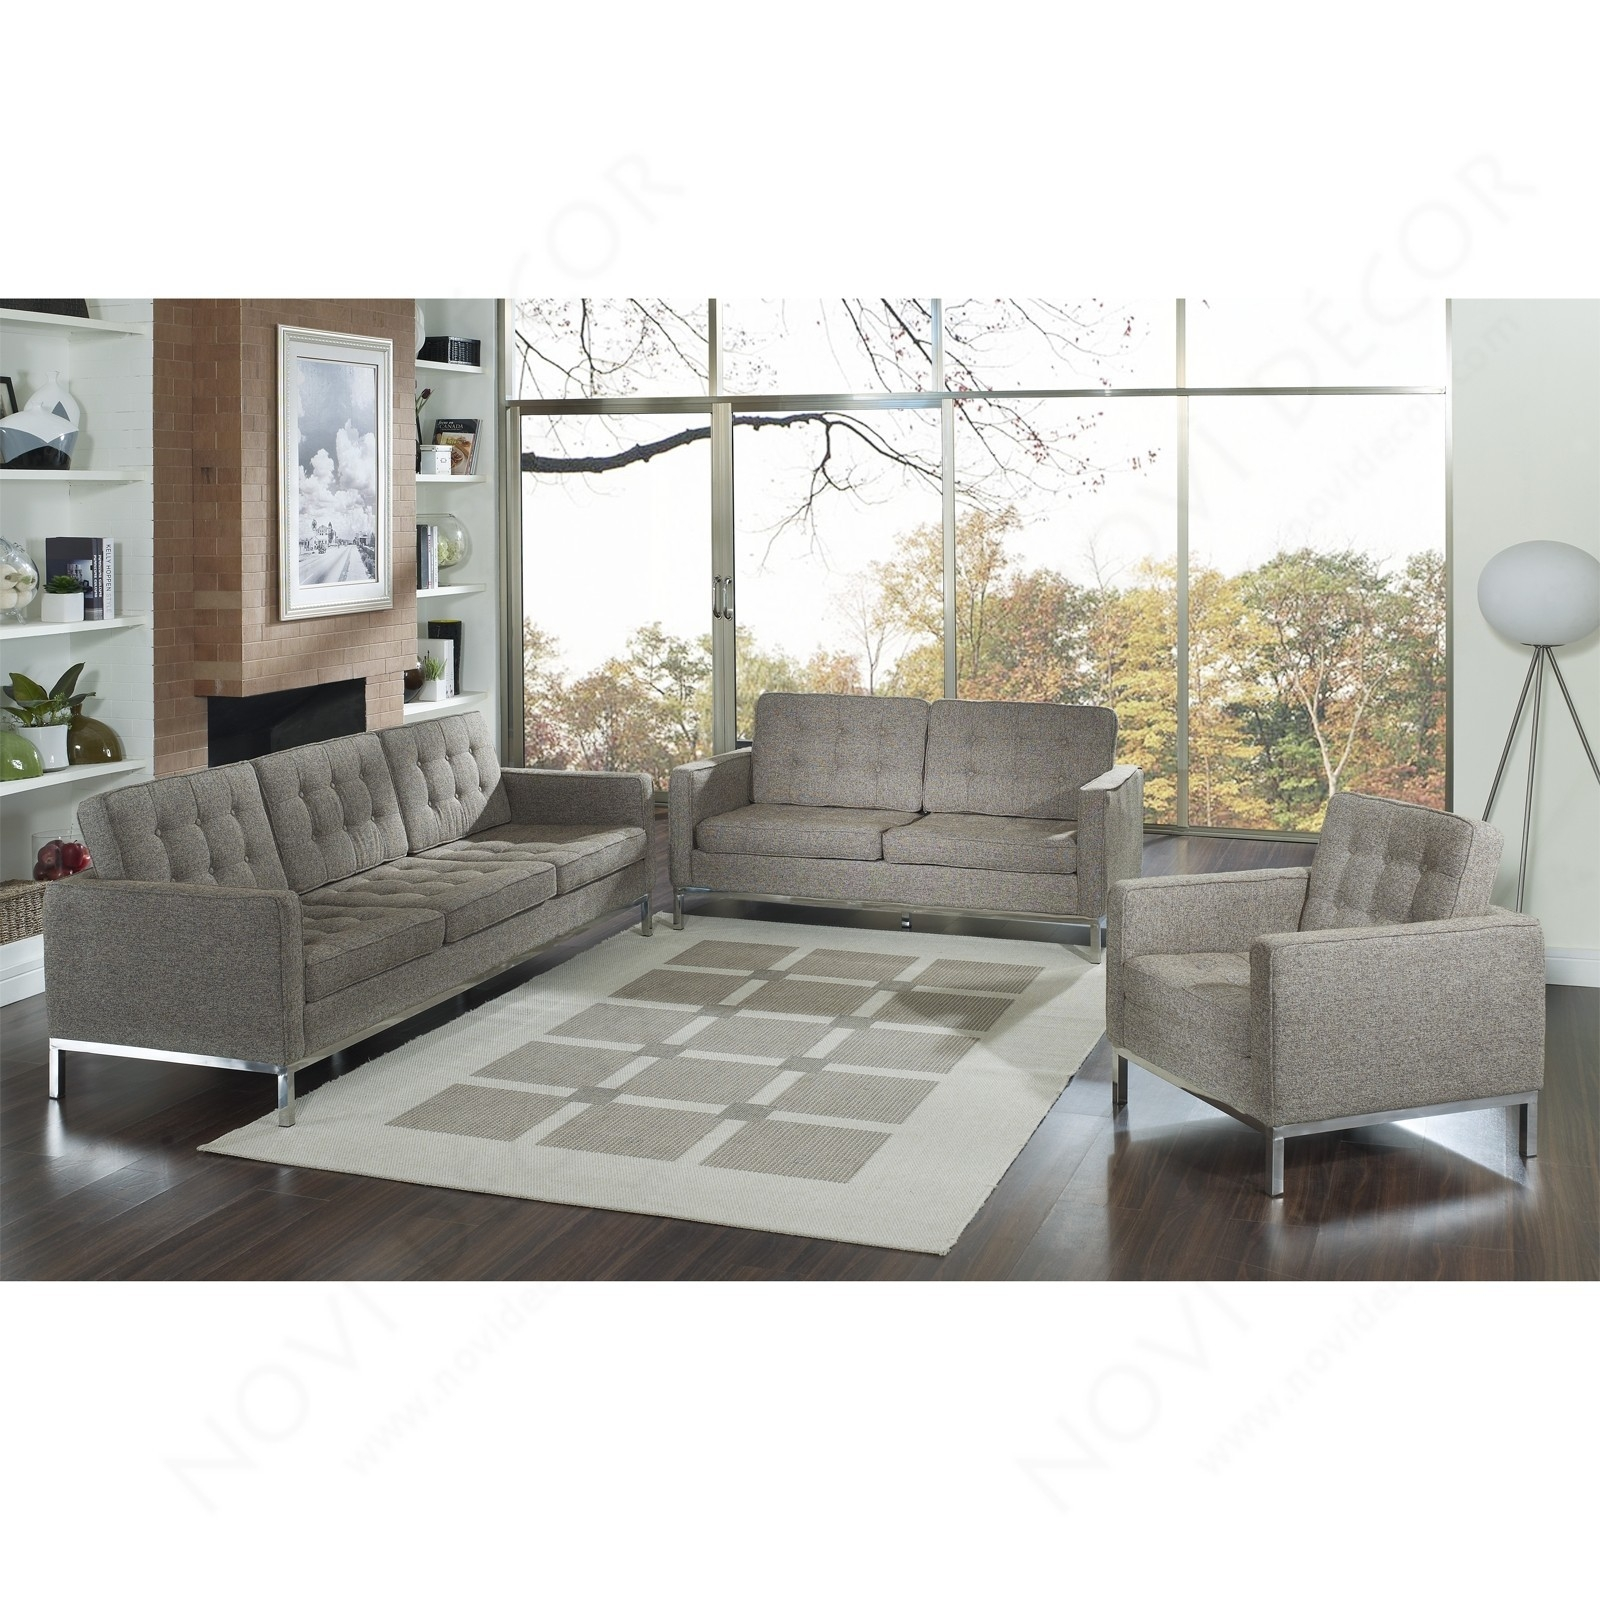 Florence Style Sofa In Wool Multiple Colors Designer Reproduction Regarding Florence Sofas (Image 8 of 15)